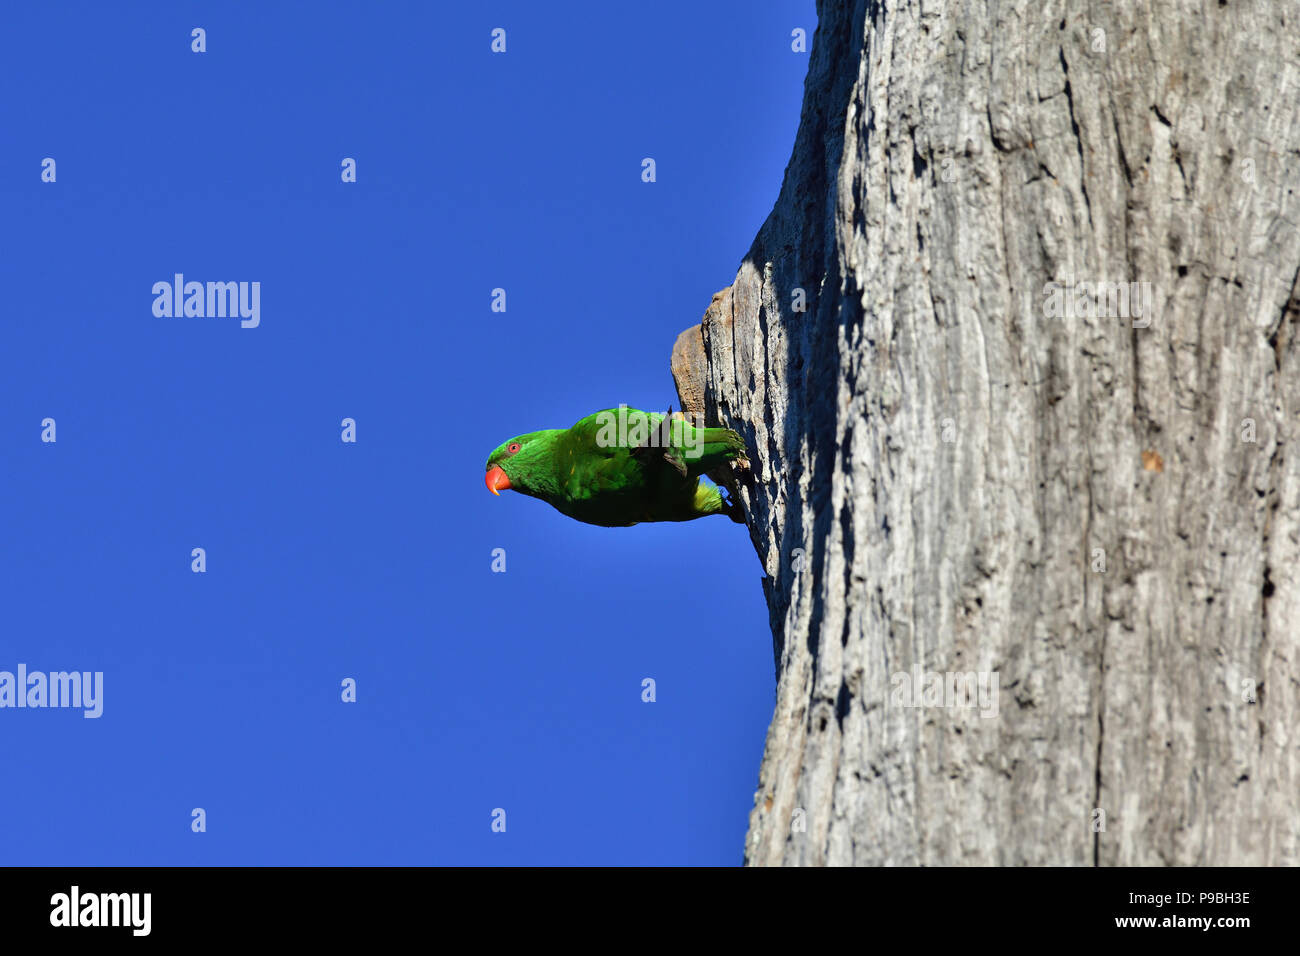 An Australian, Queensland Scaly-breasted Lorikeet ( Trichoglossus chlorolepidotus ) hanging out horizontally from the side of a dead tree trunk - Stock Image